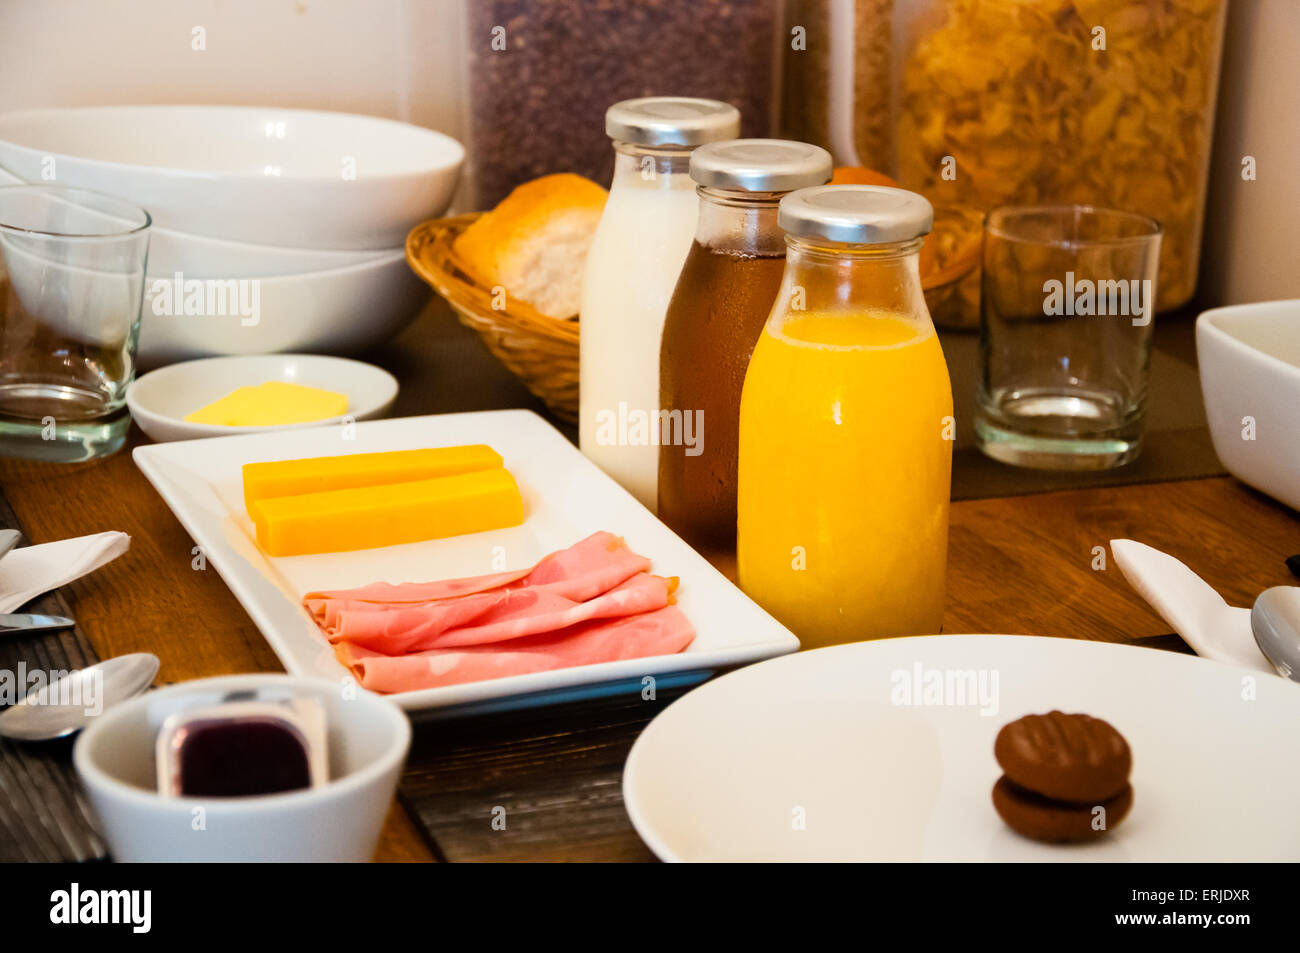 continental breakfast table setting at a hotel & continental breakfast table setting at a hotel Stock Photo: 83384639 ...